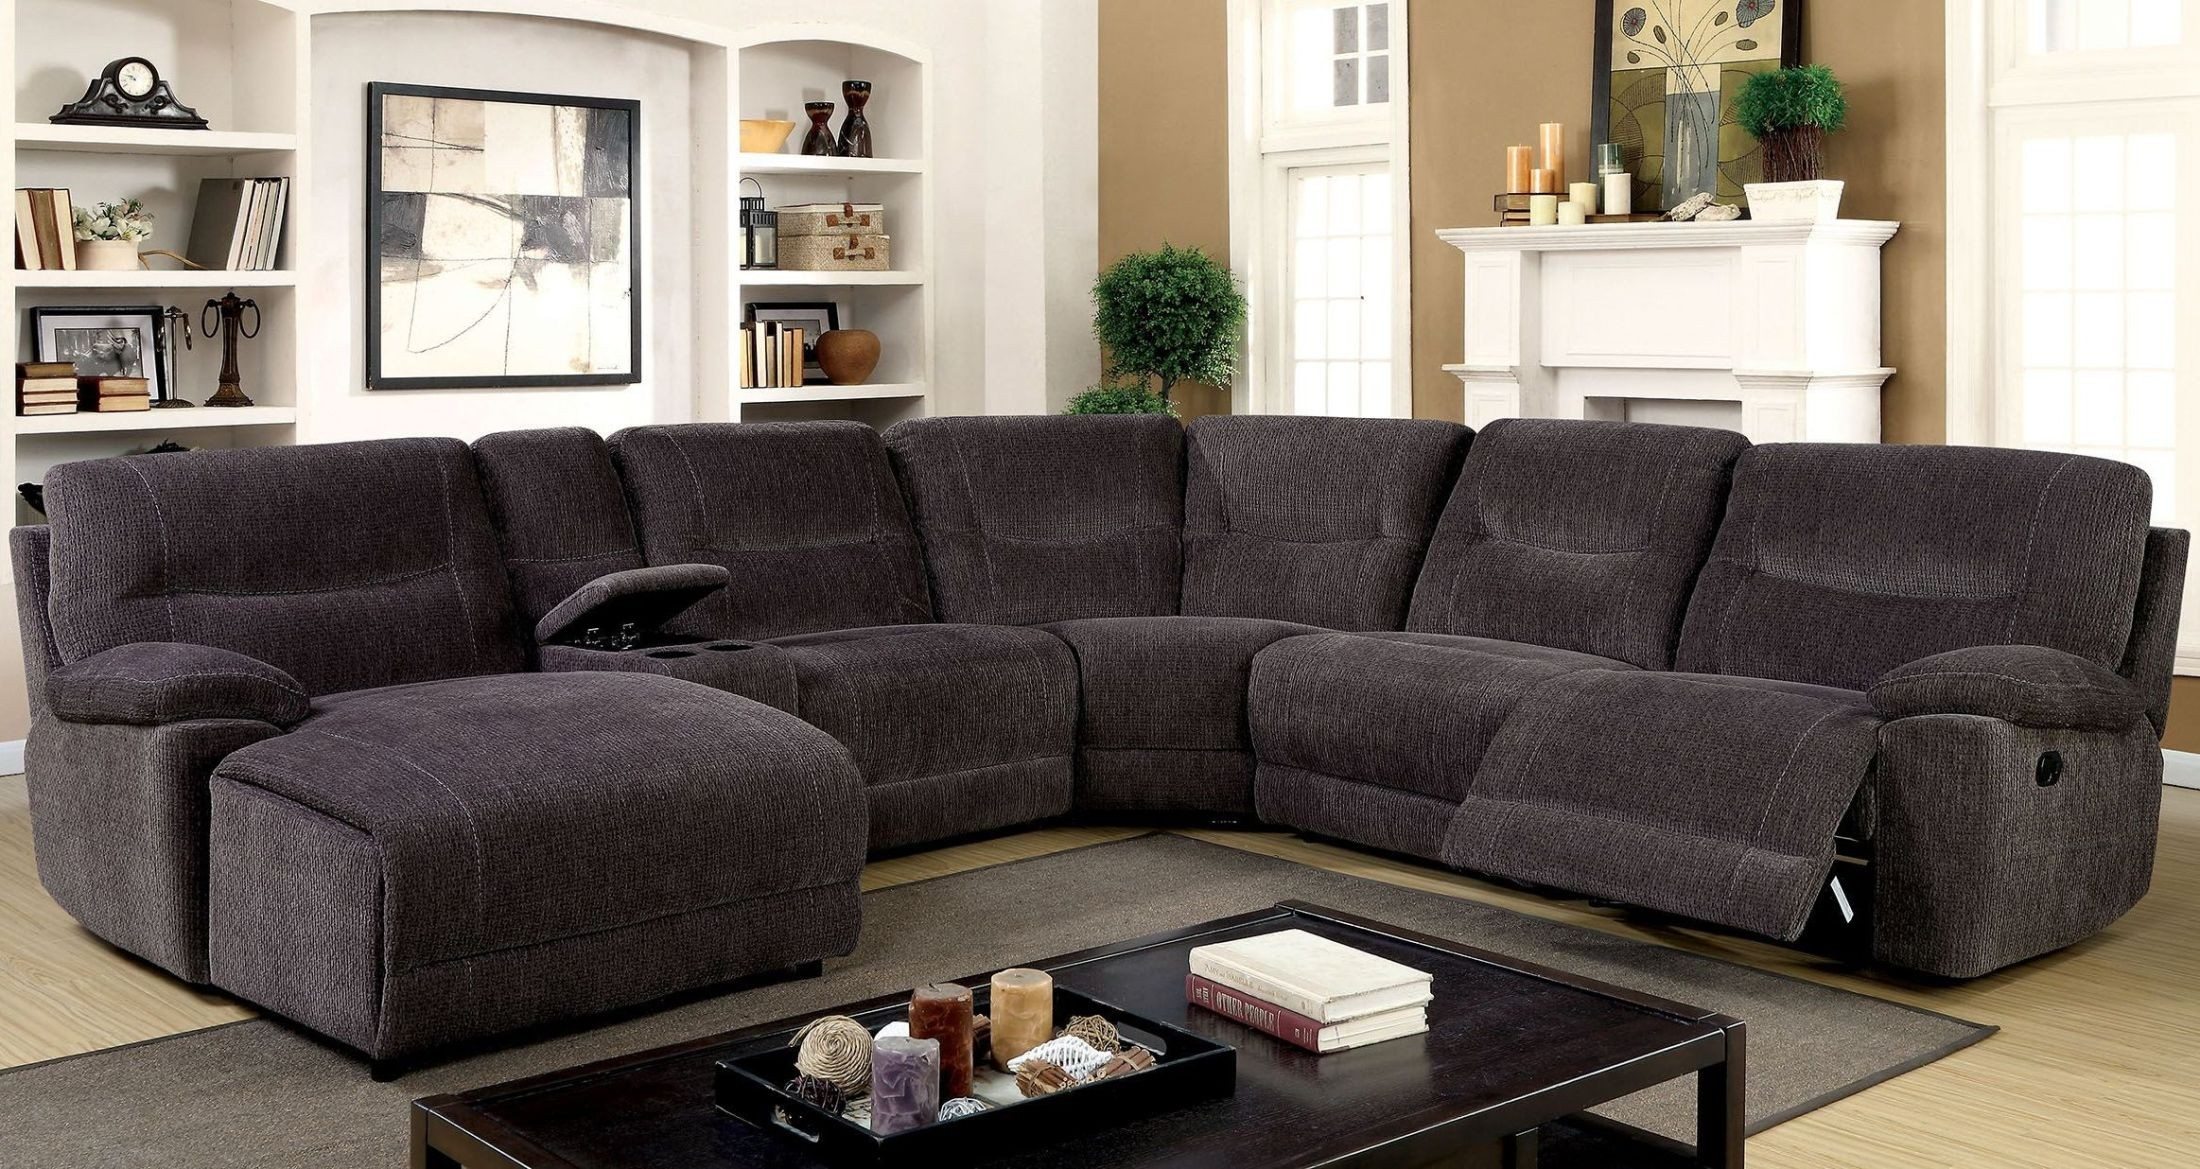 Karlee Ii Gray Reclining Sectional With Console From